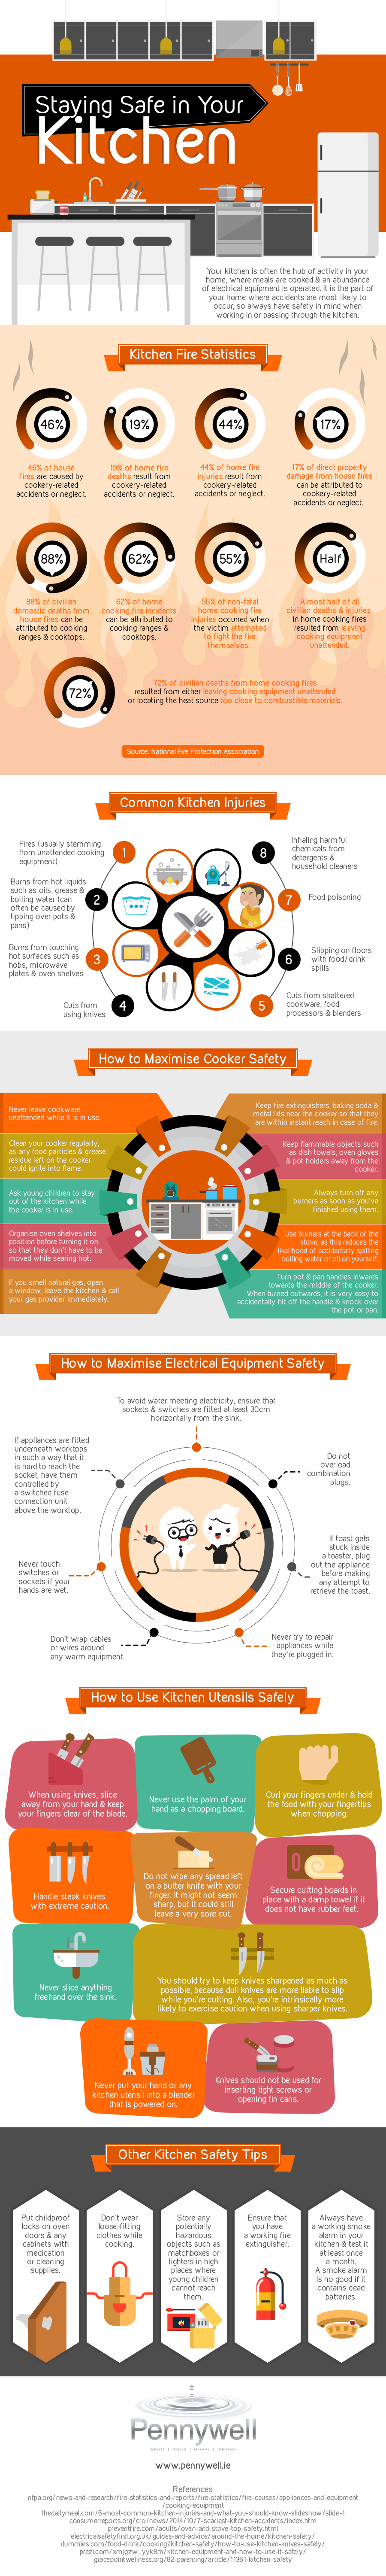 How to Stay Safe in Your Kitchen - Infographic